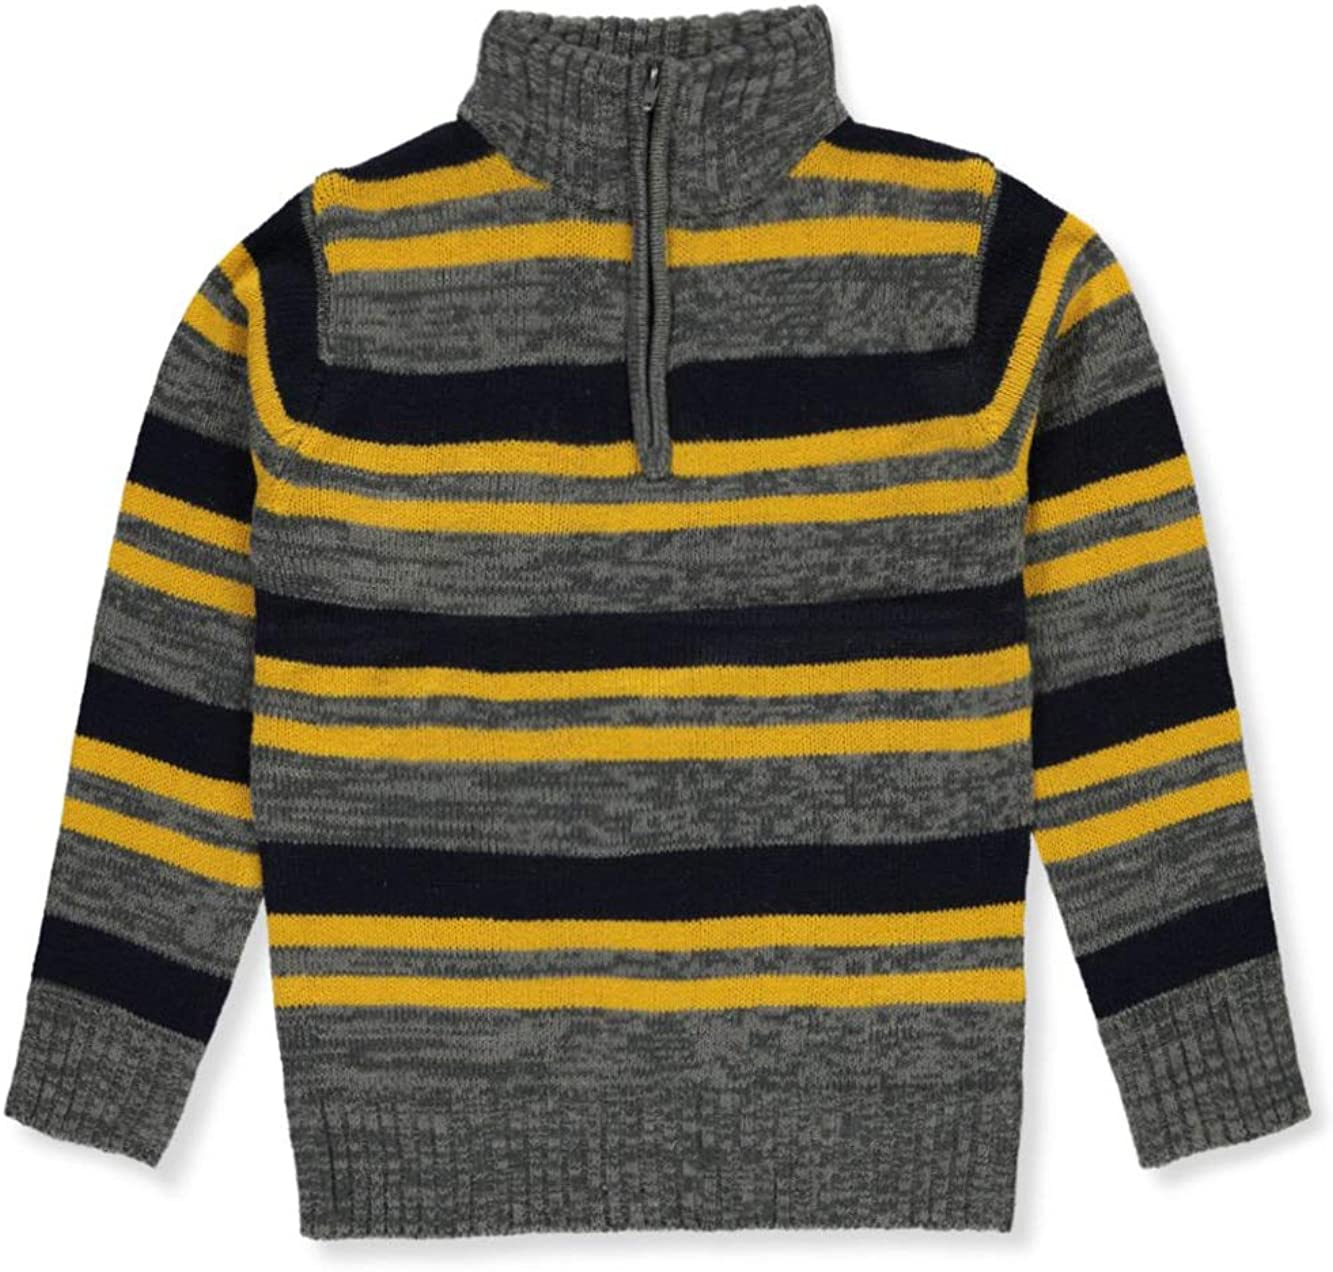 Sezzit Boys Zip Neck Sweater